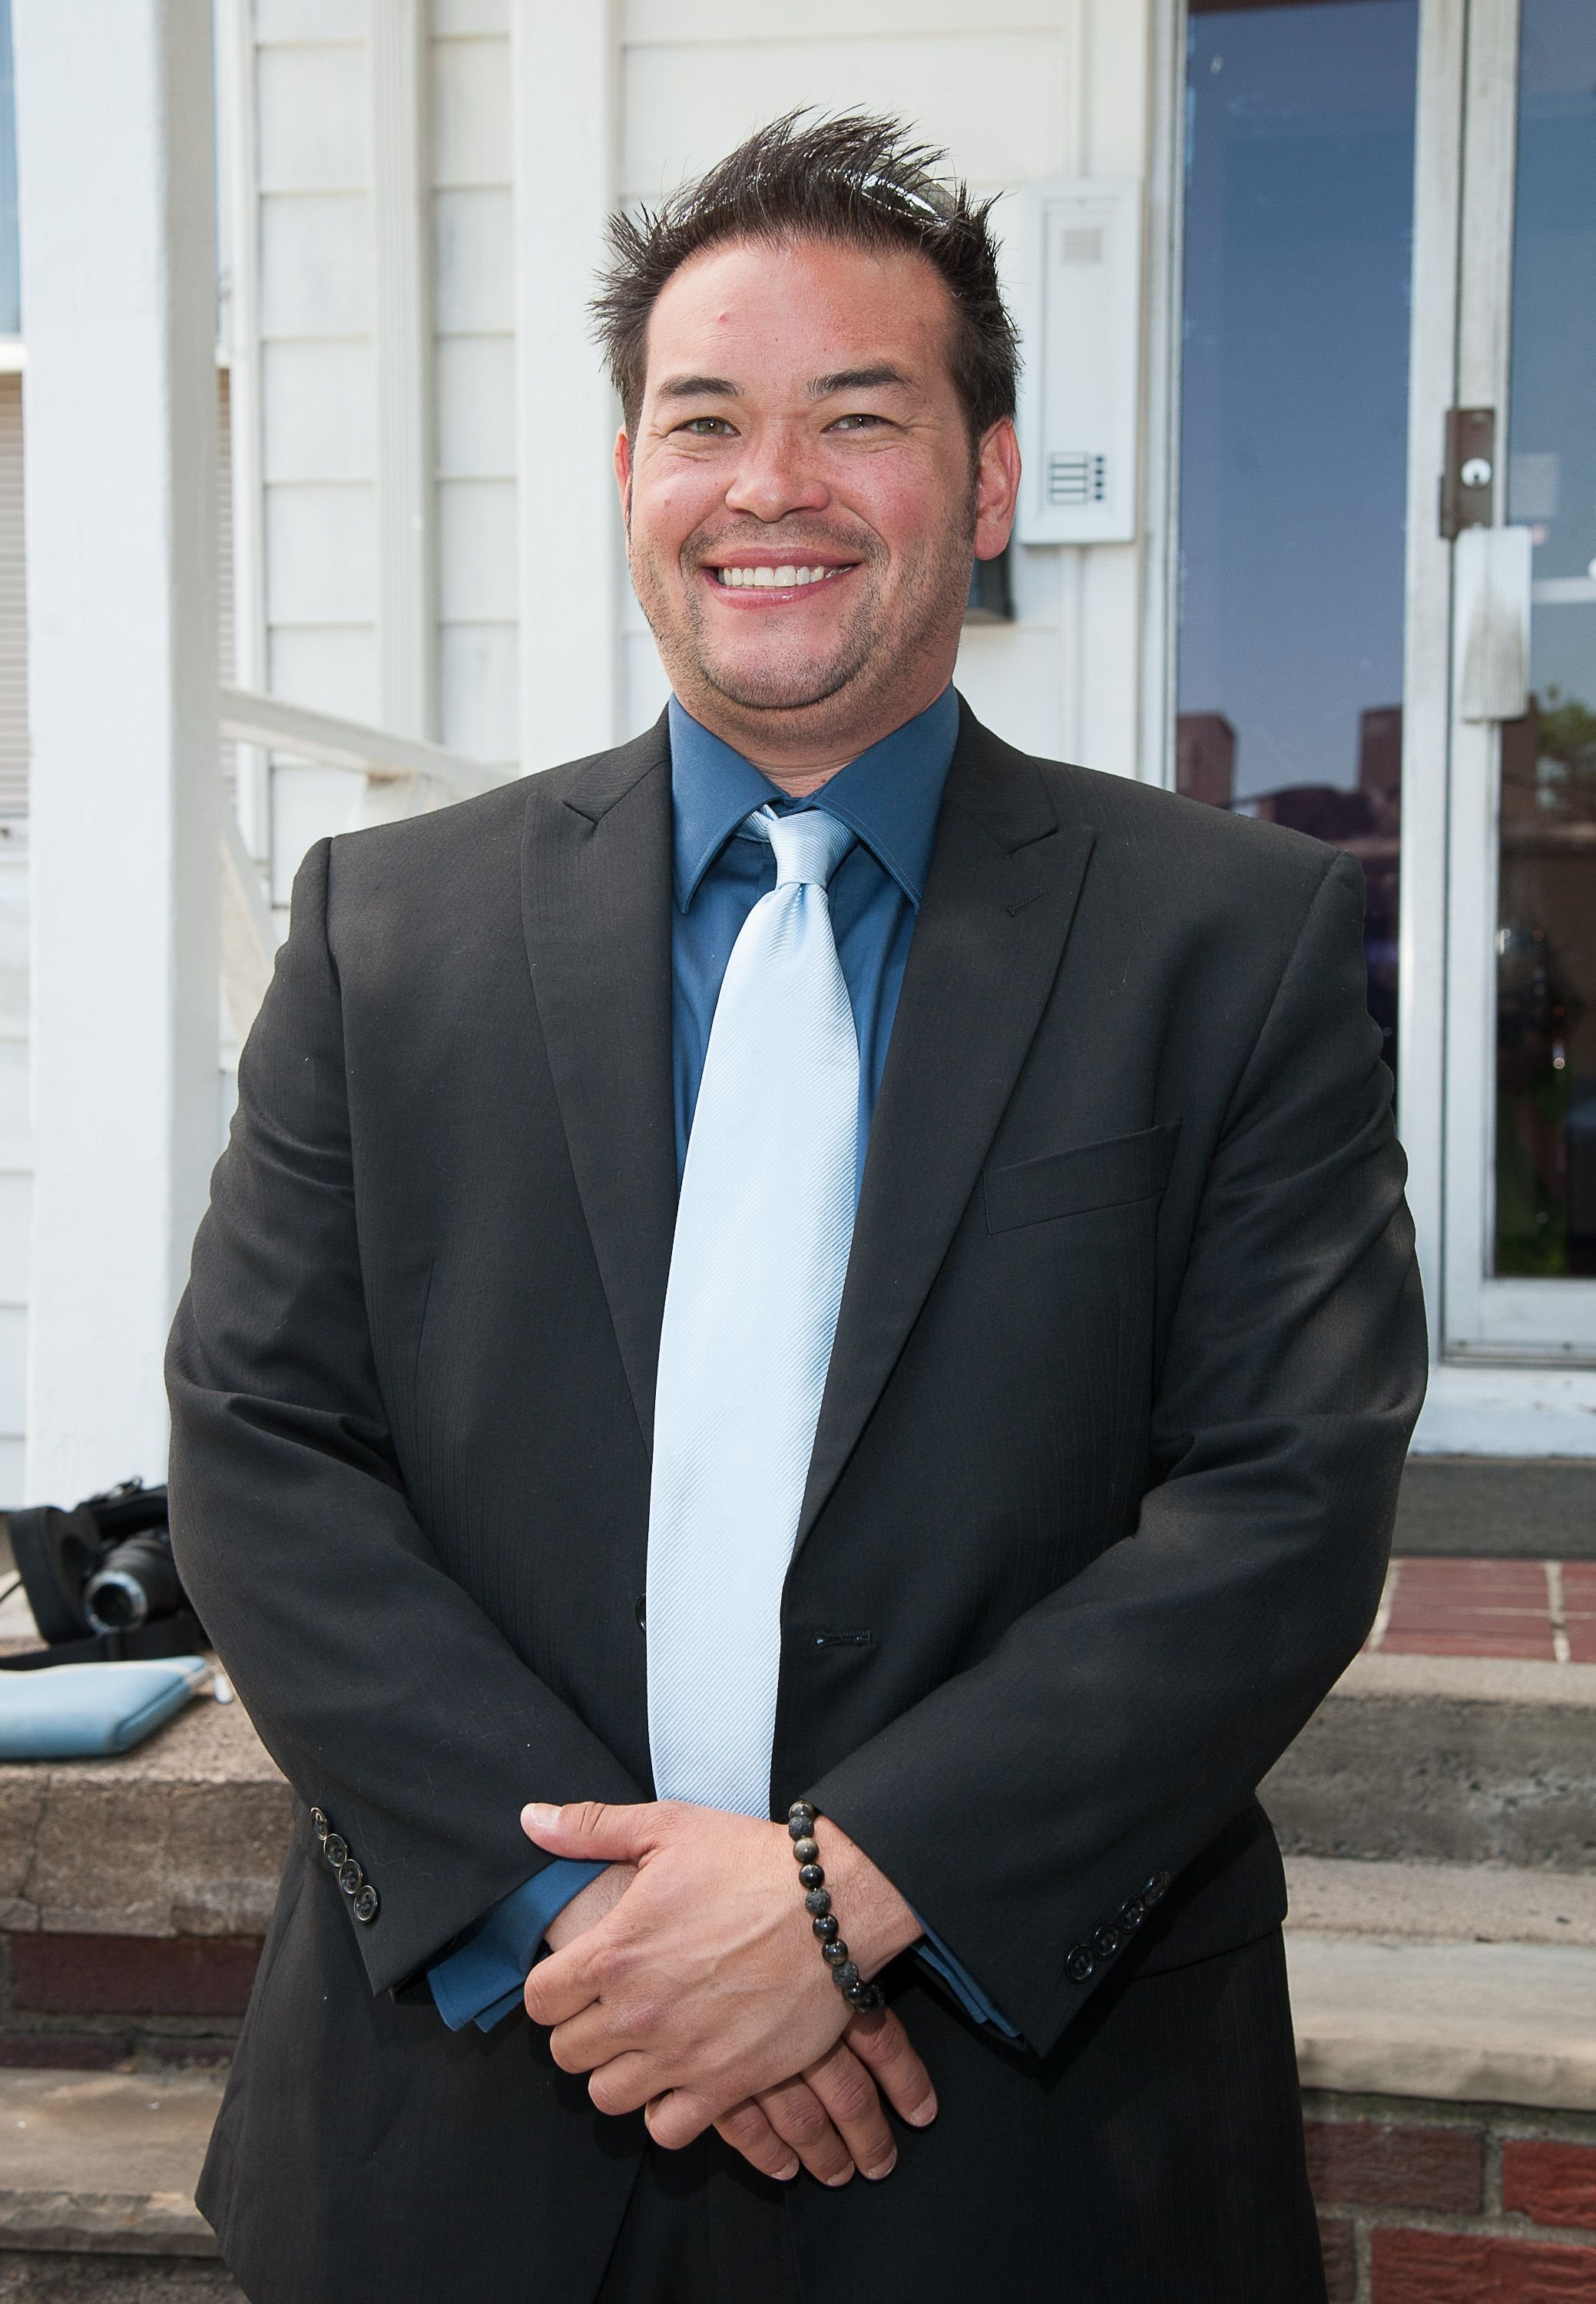 Jon Gosselin during a press conference on Tax Deductible Marriage Counseling at Bergen Marriage Counseling & Psychotherapy on June 27, 2012 | Photo: Getty Images